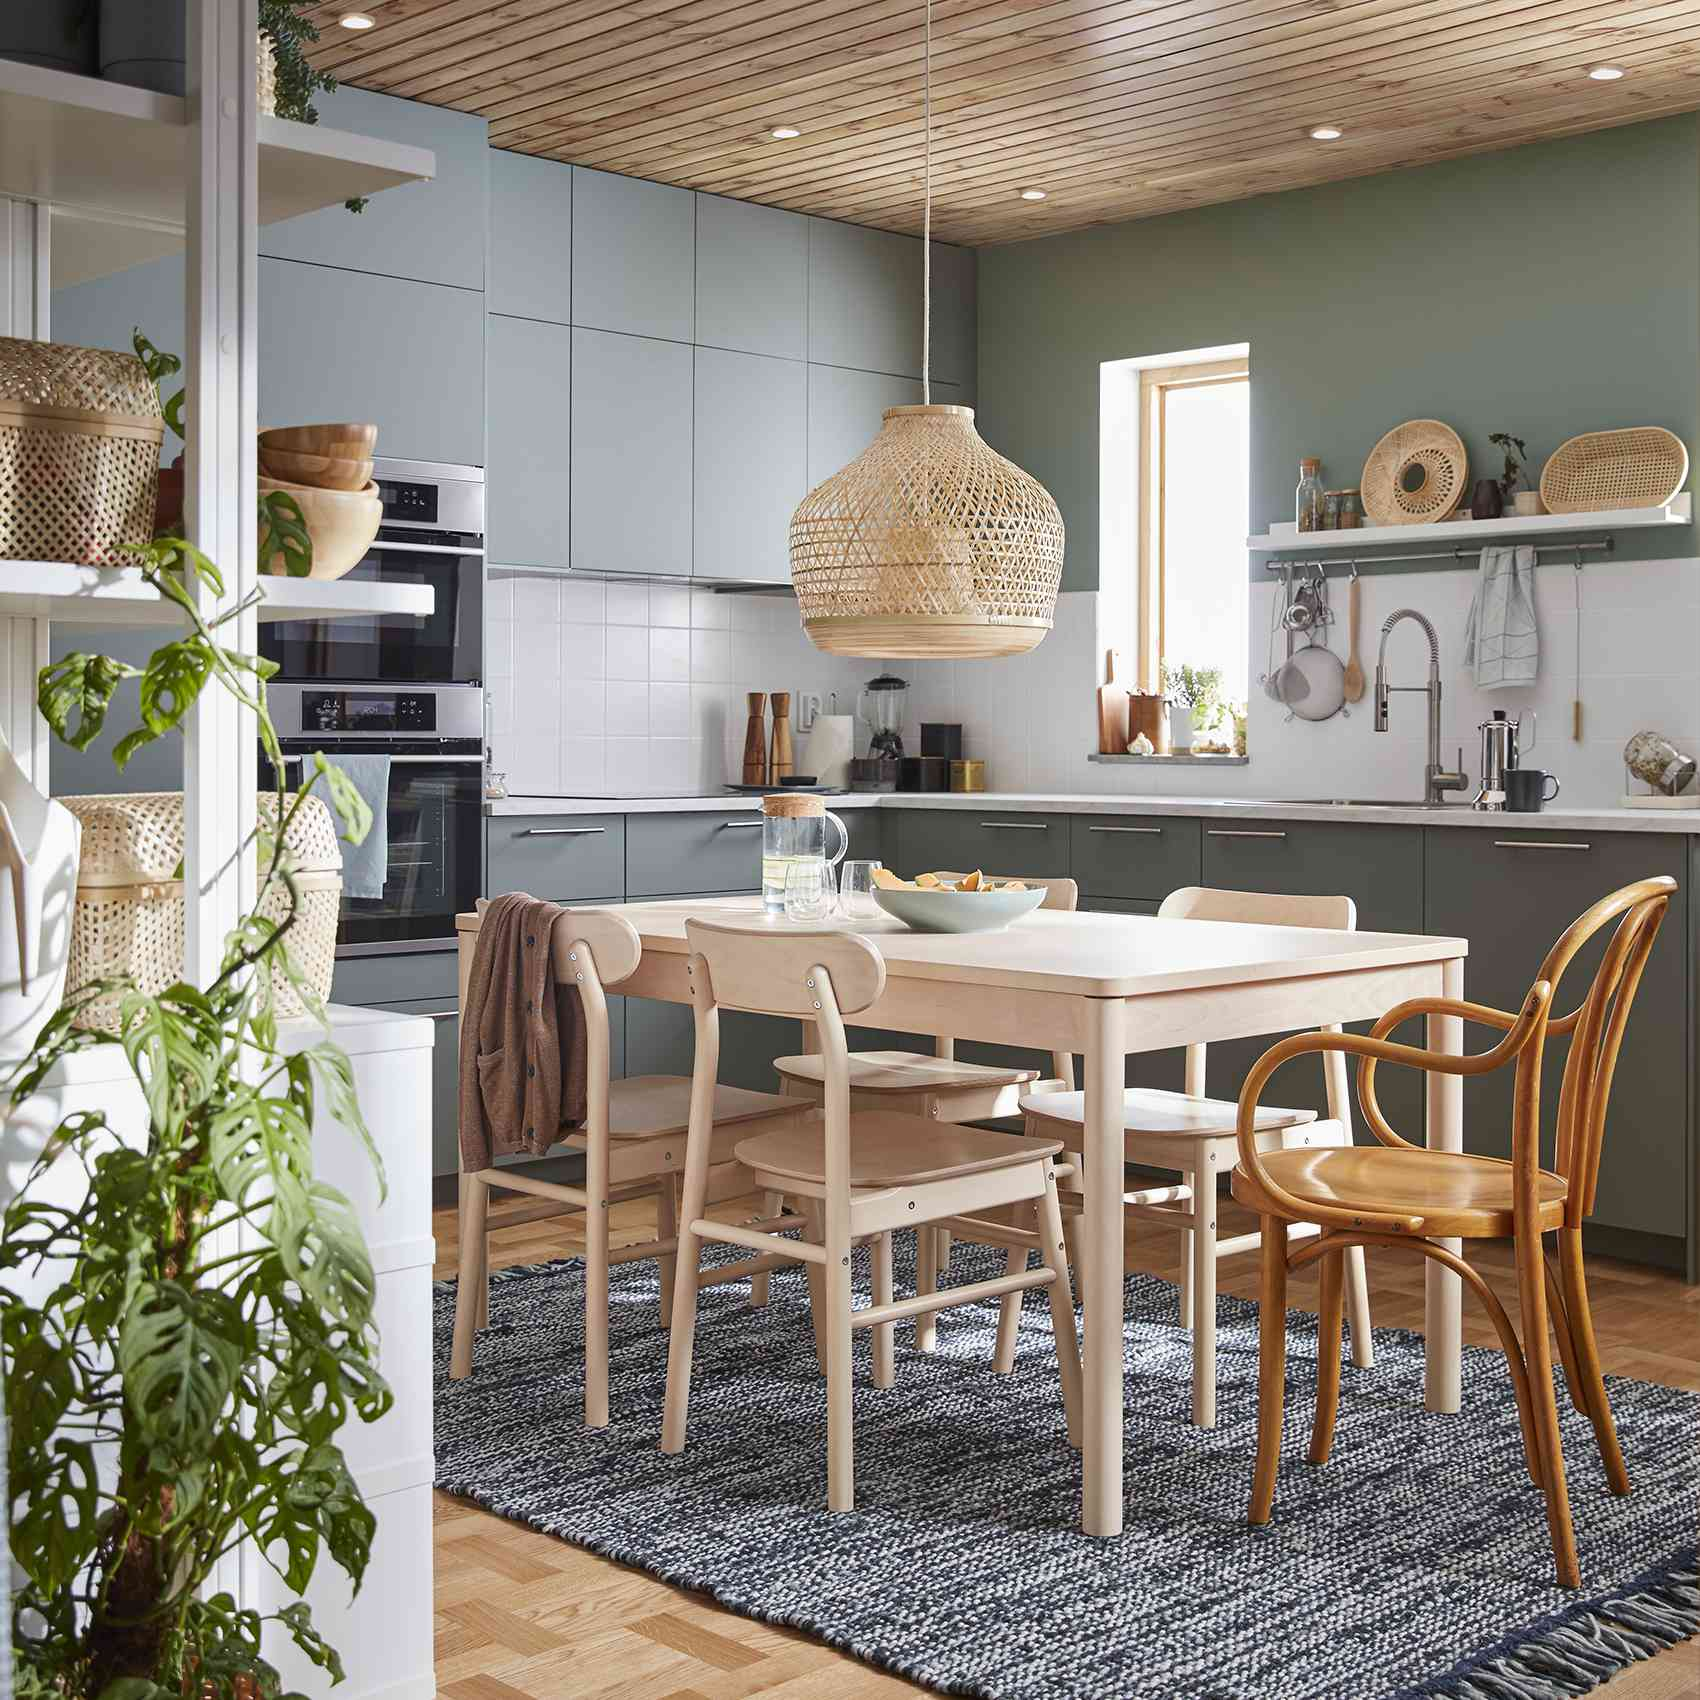 kitchen with green cabinets and rattan lighting